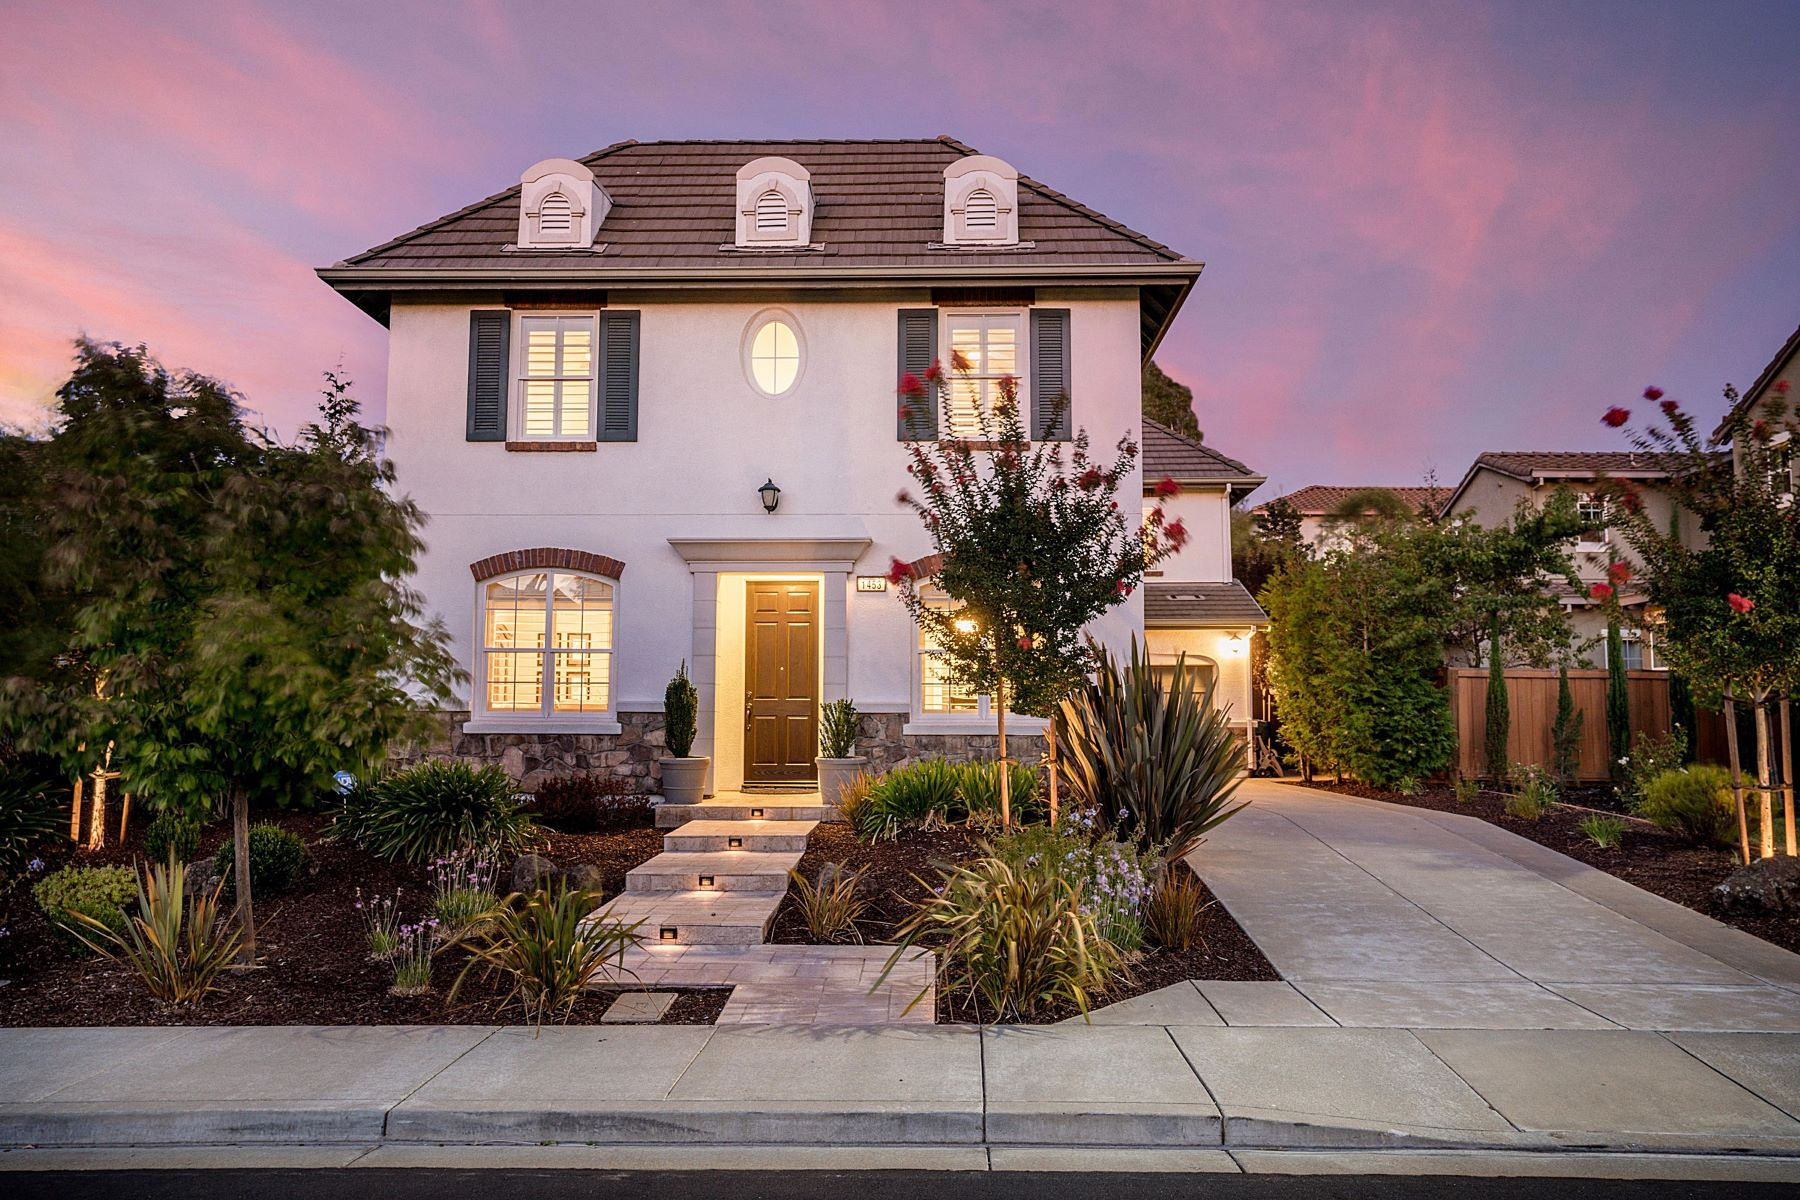 Single Family Homes for Sale at Monterosso Gem 1453 Menton Street Danville, California 94506 United States